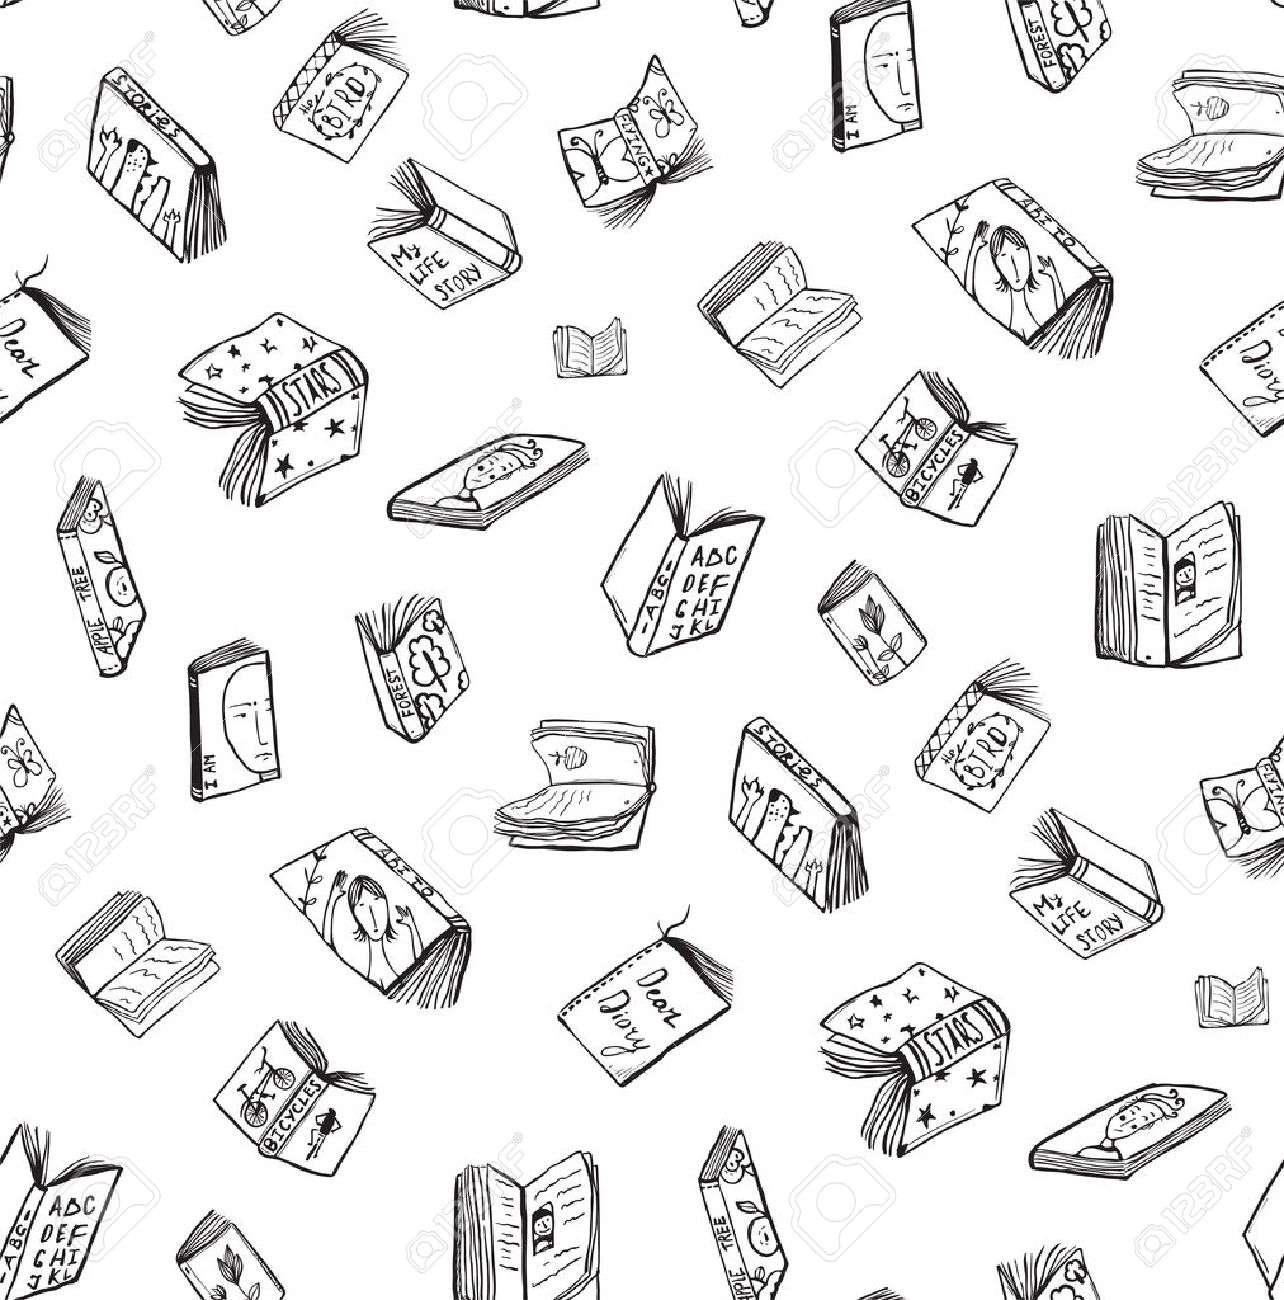 1284x1300 Open Books Drawing Seamless Pattern Background. Hand Drawn Black